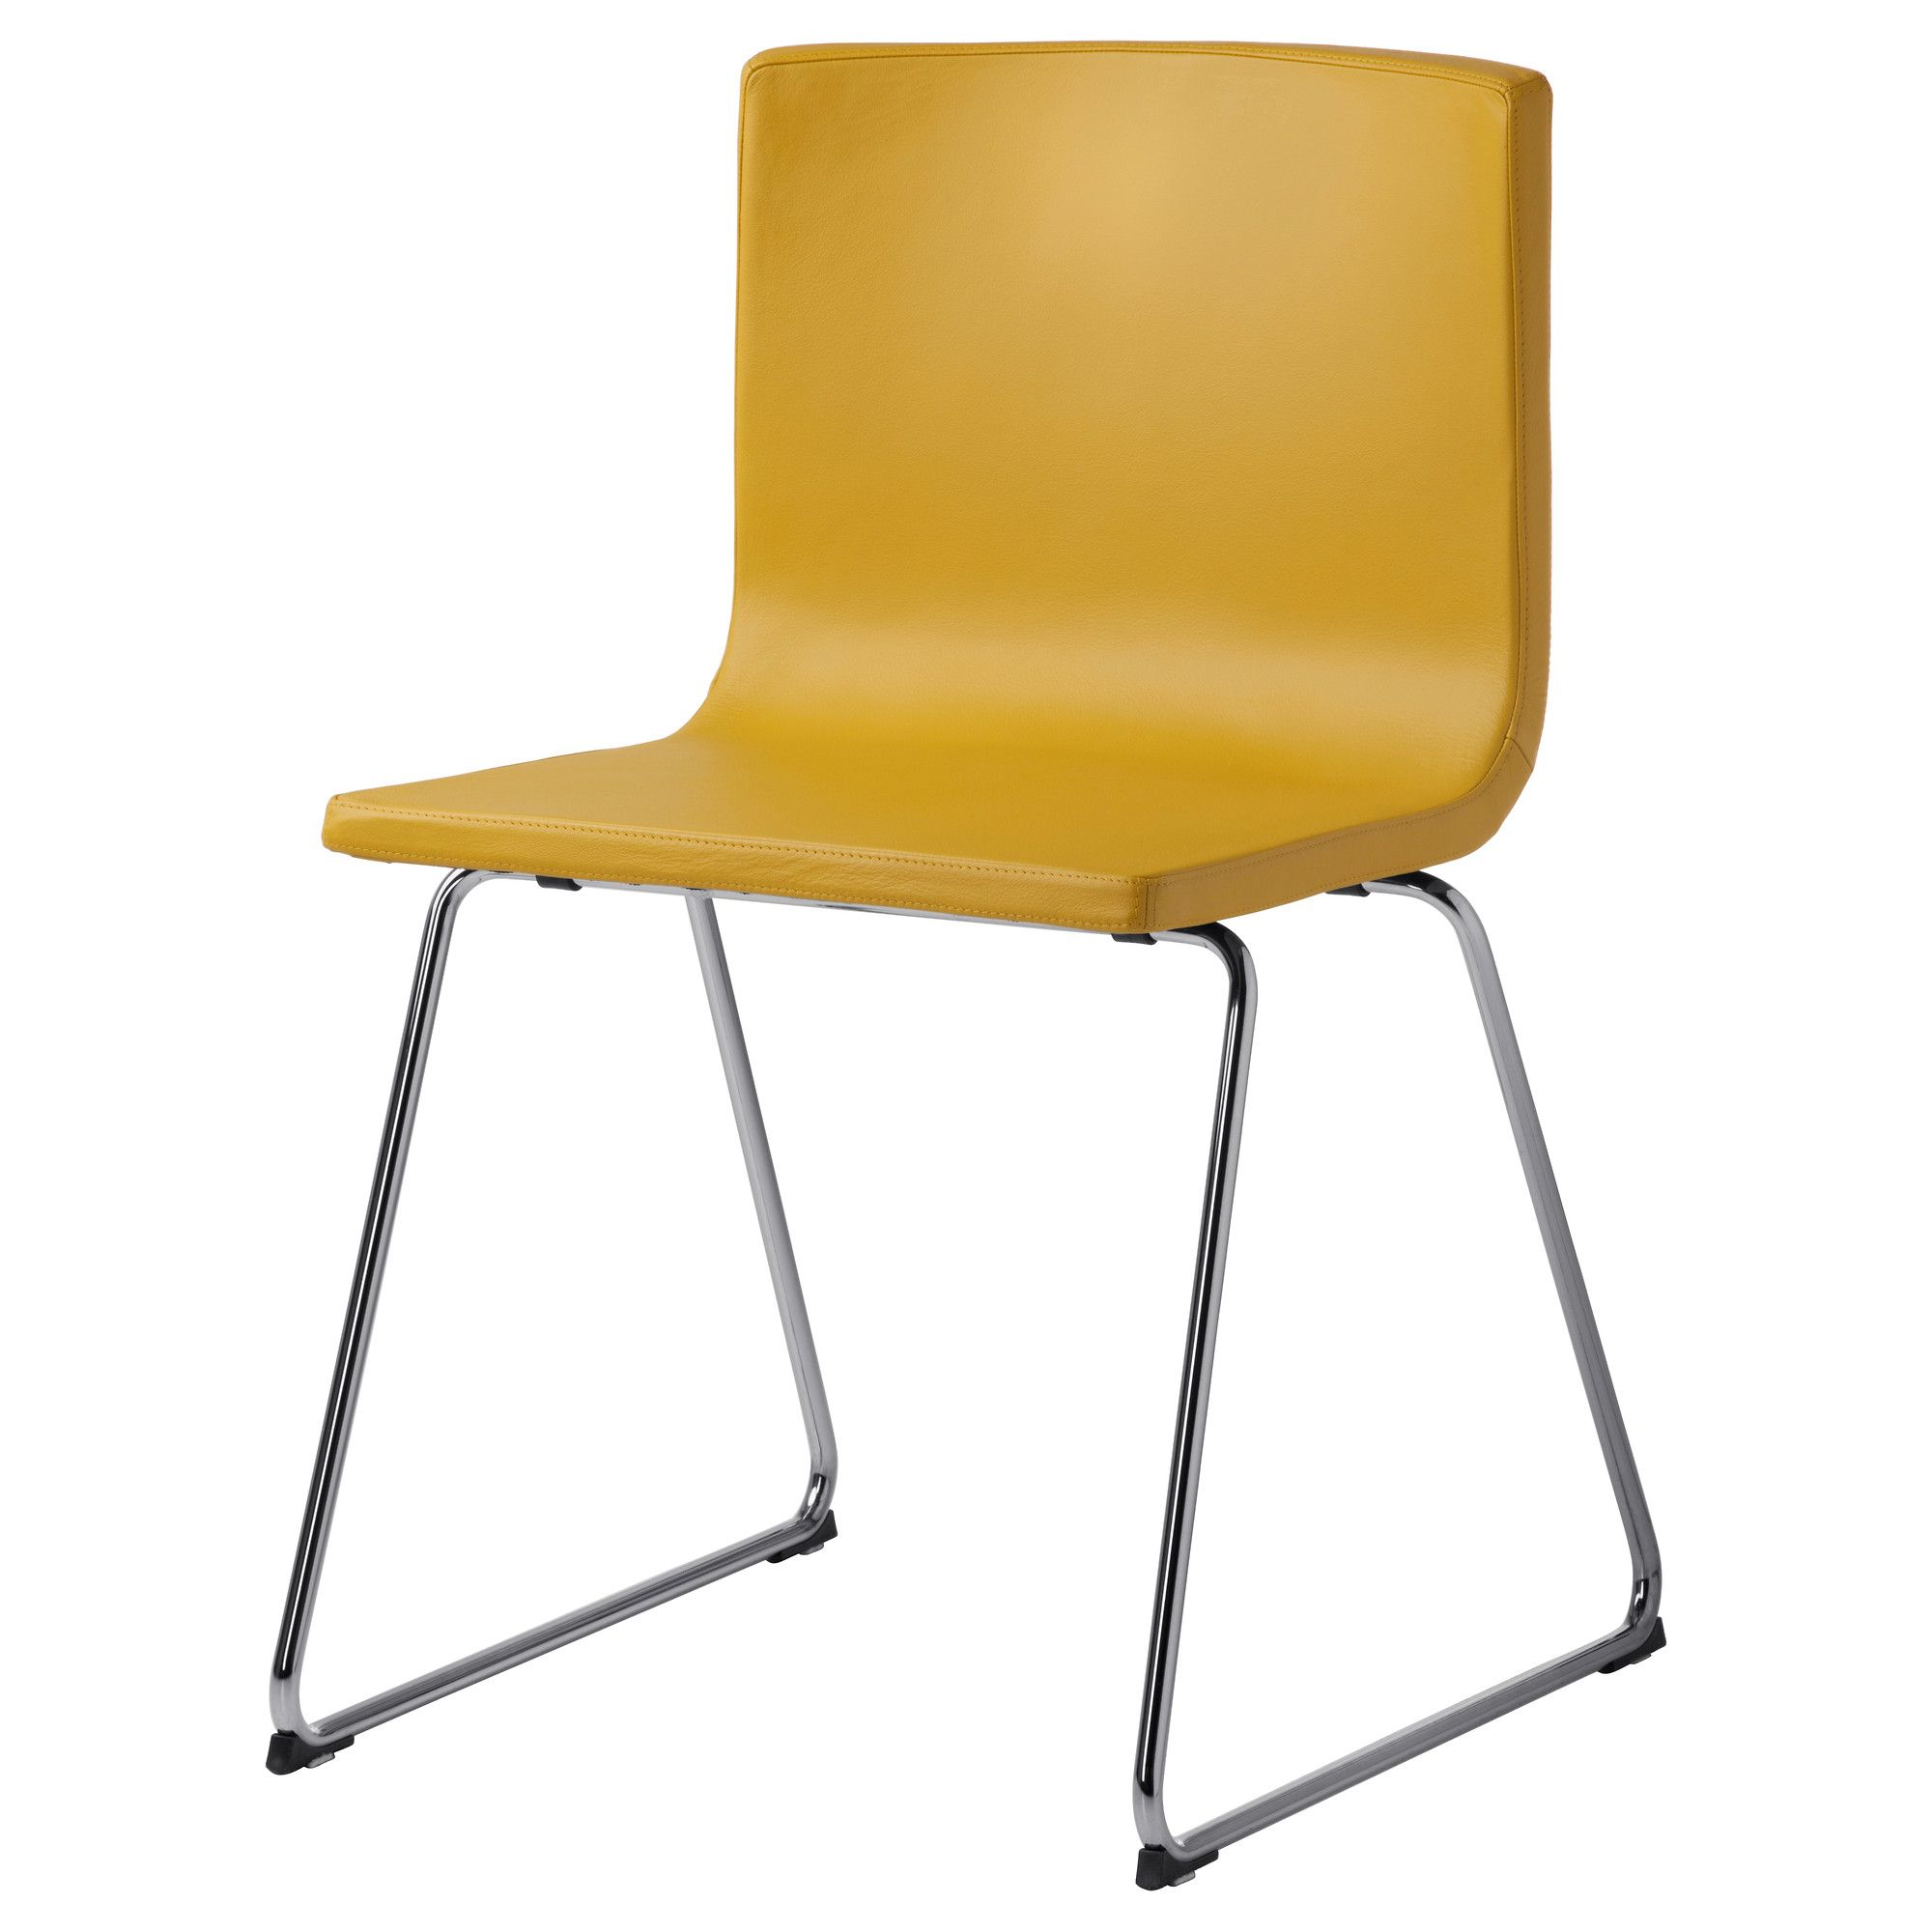 BERNHARD Chair in Dark Yellow if you want to add some color to